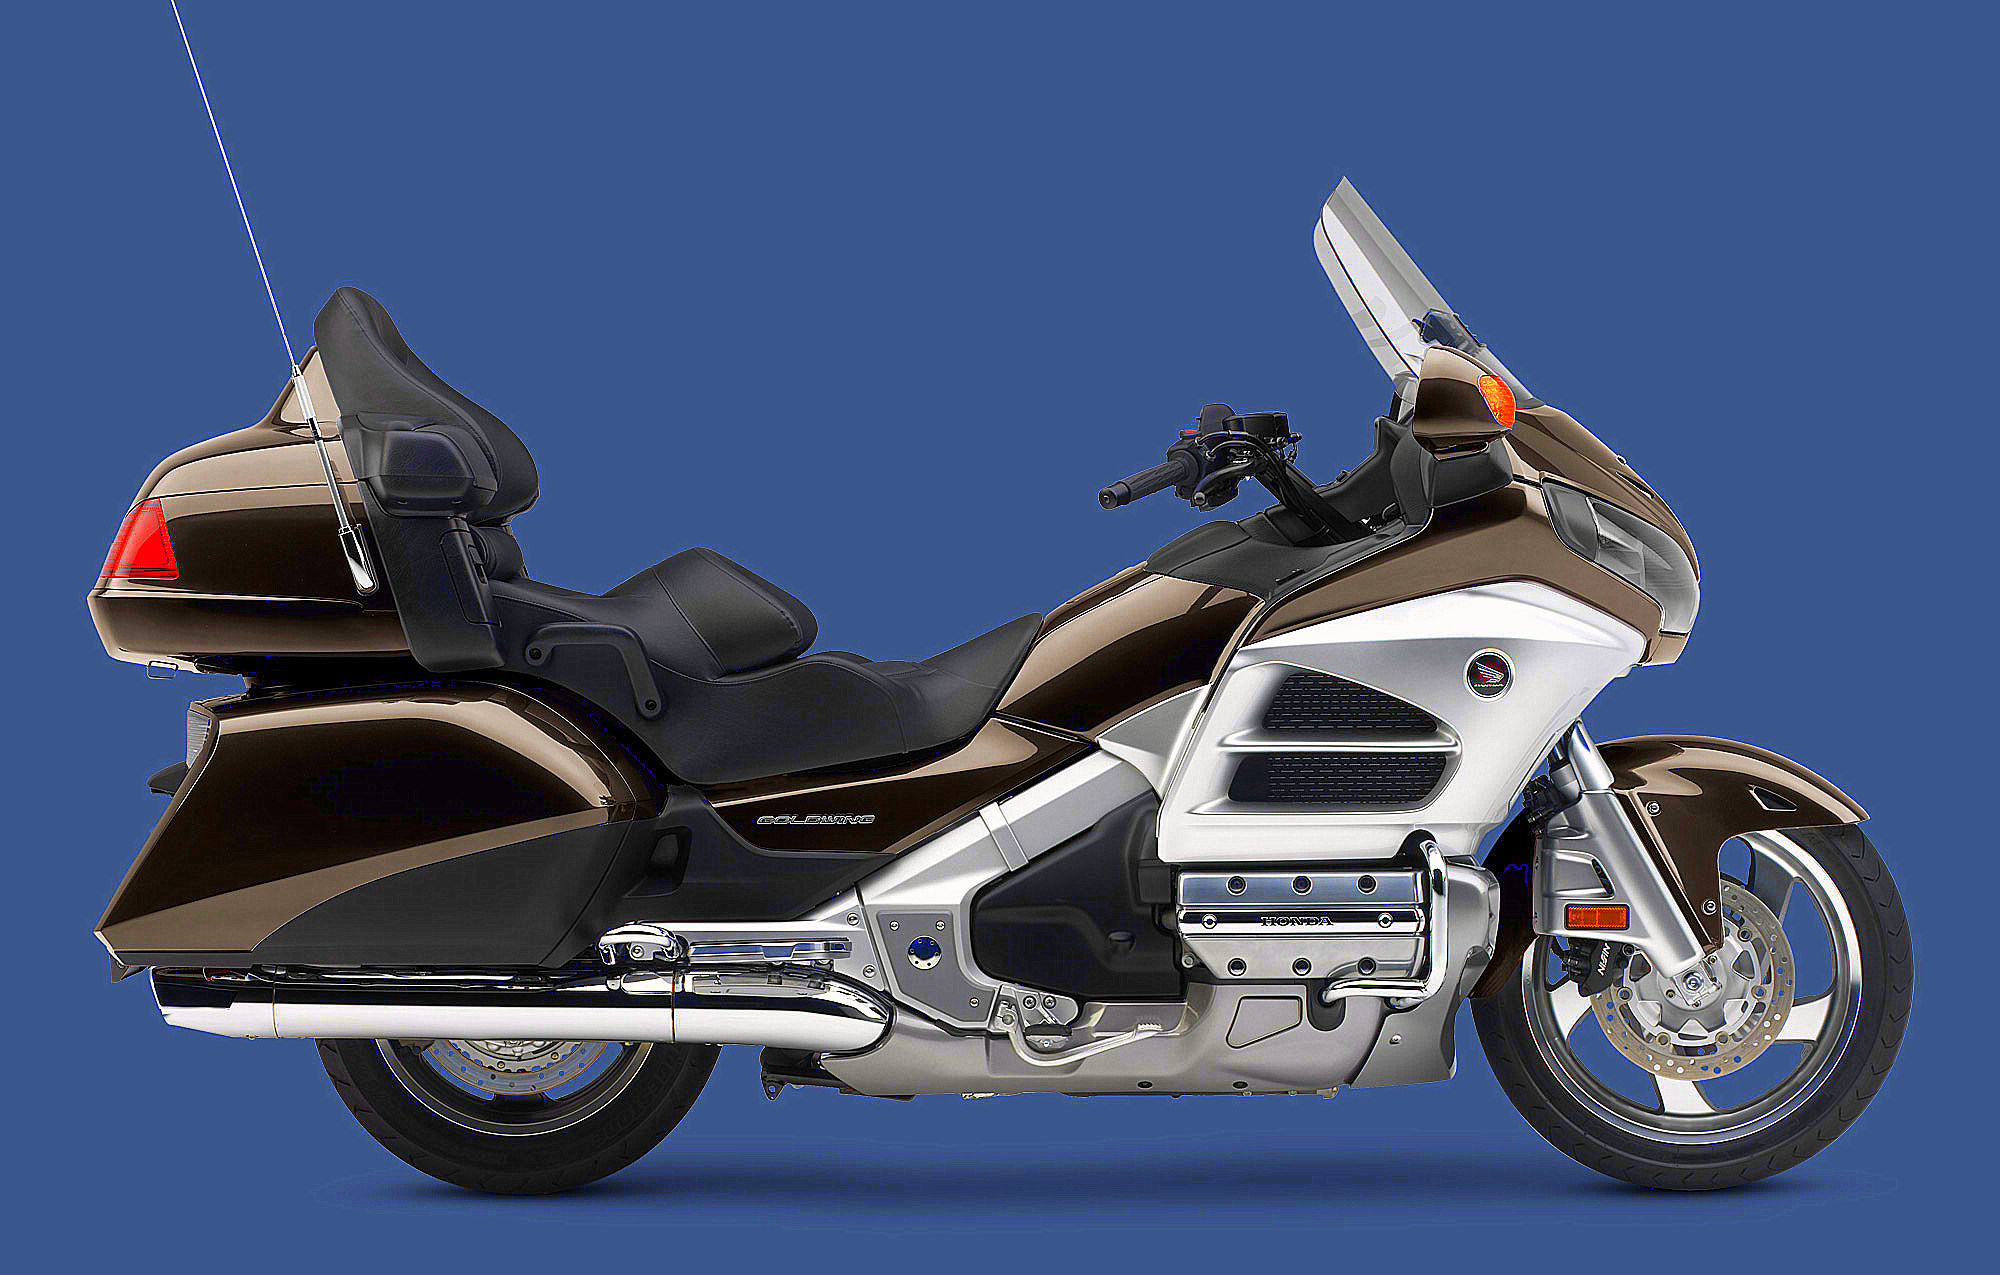 Honda GL 1800 Gold Wing 2013 images #83168